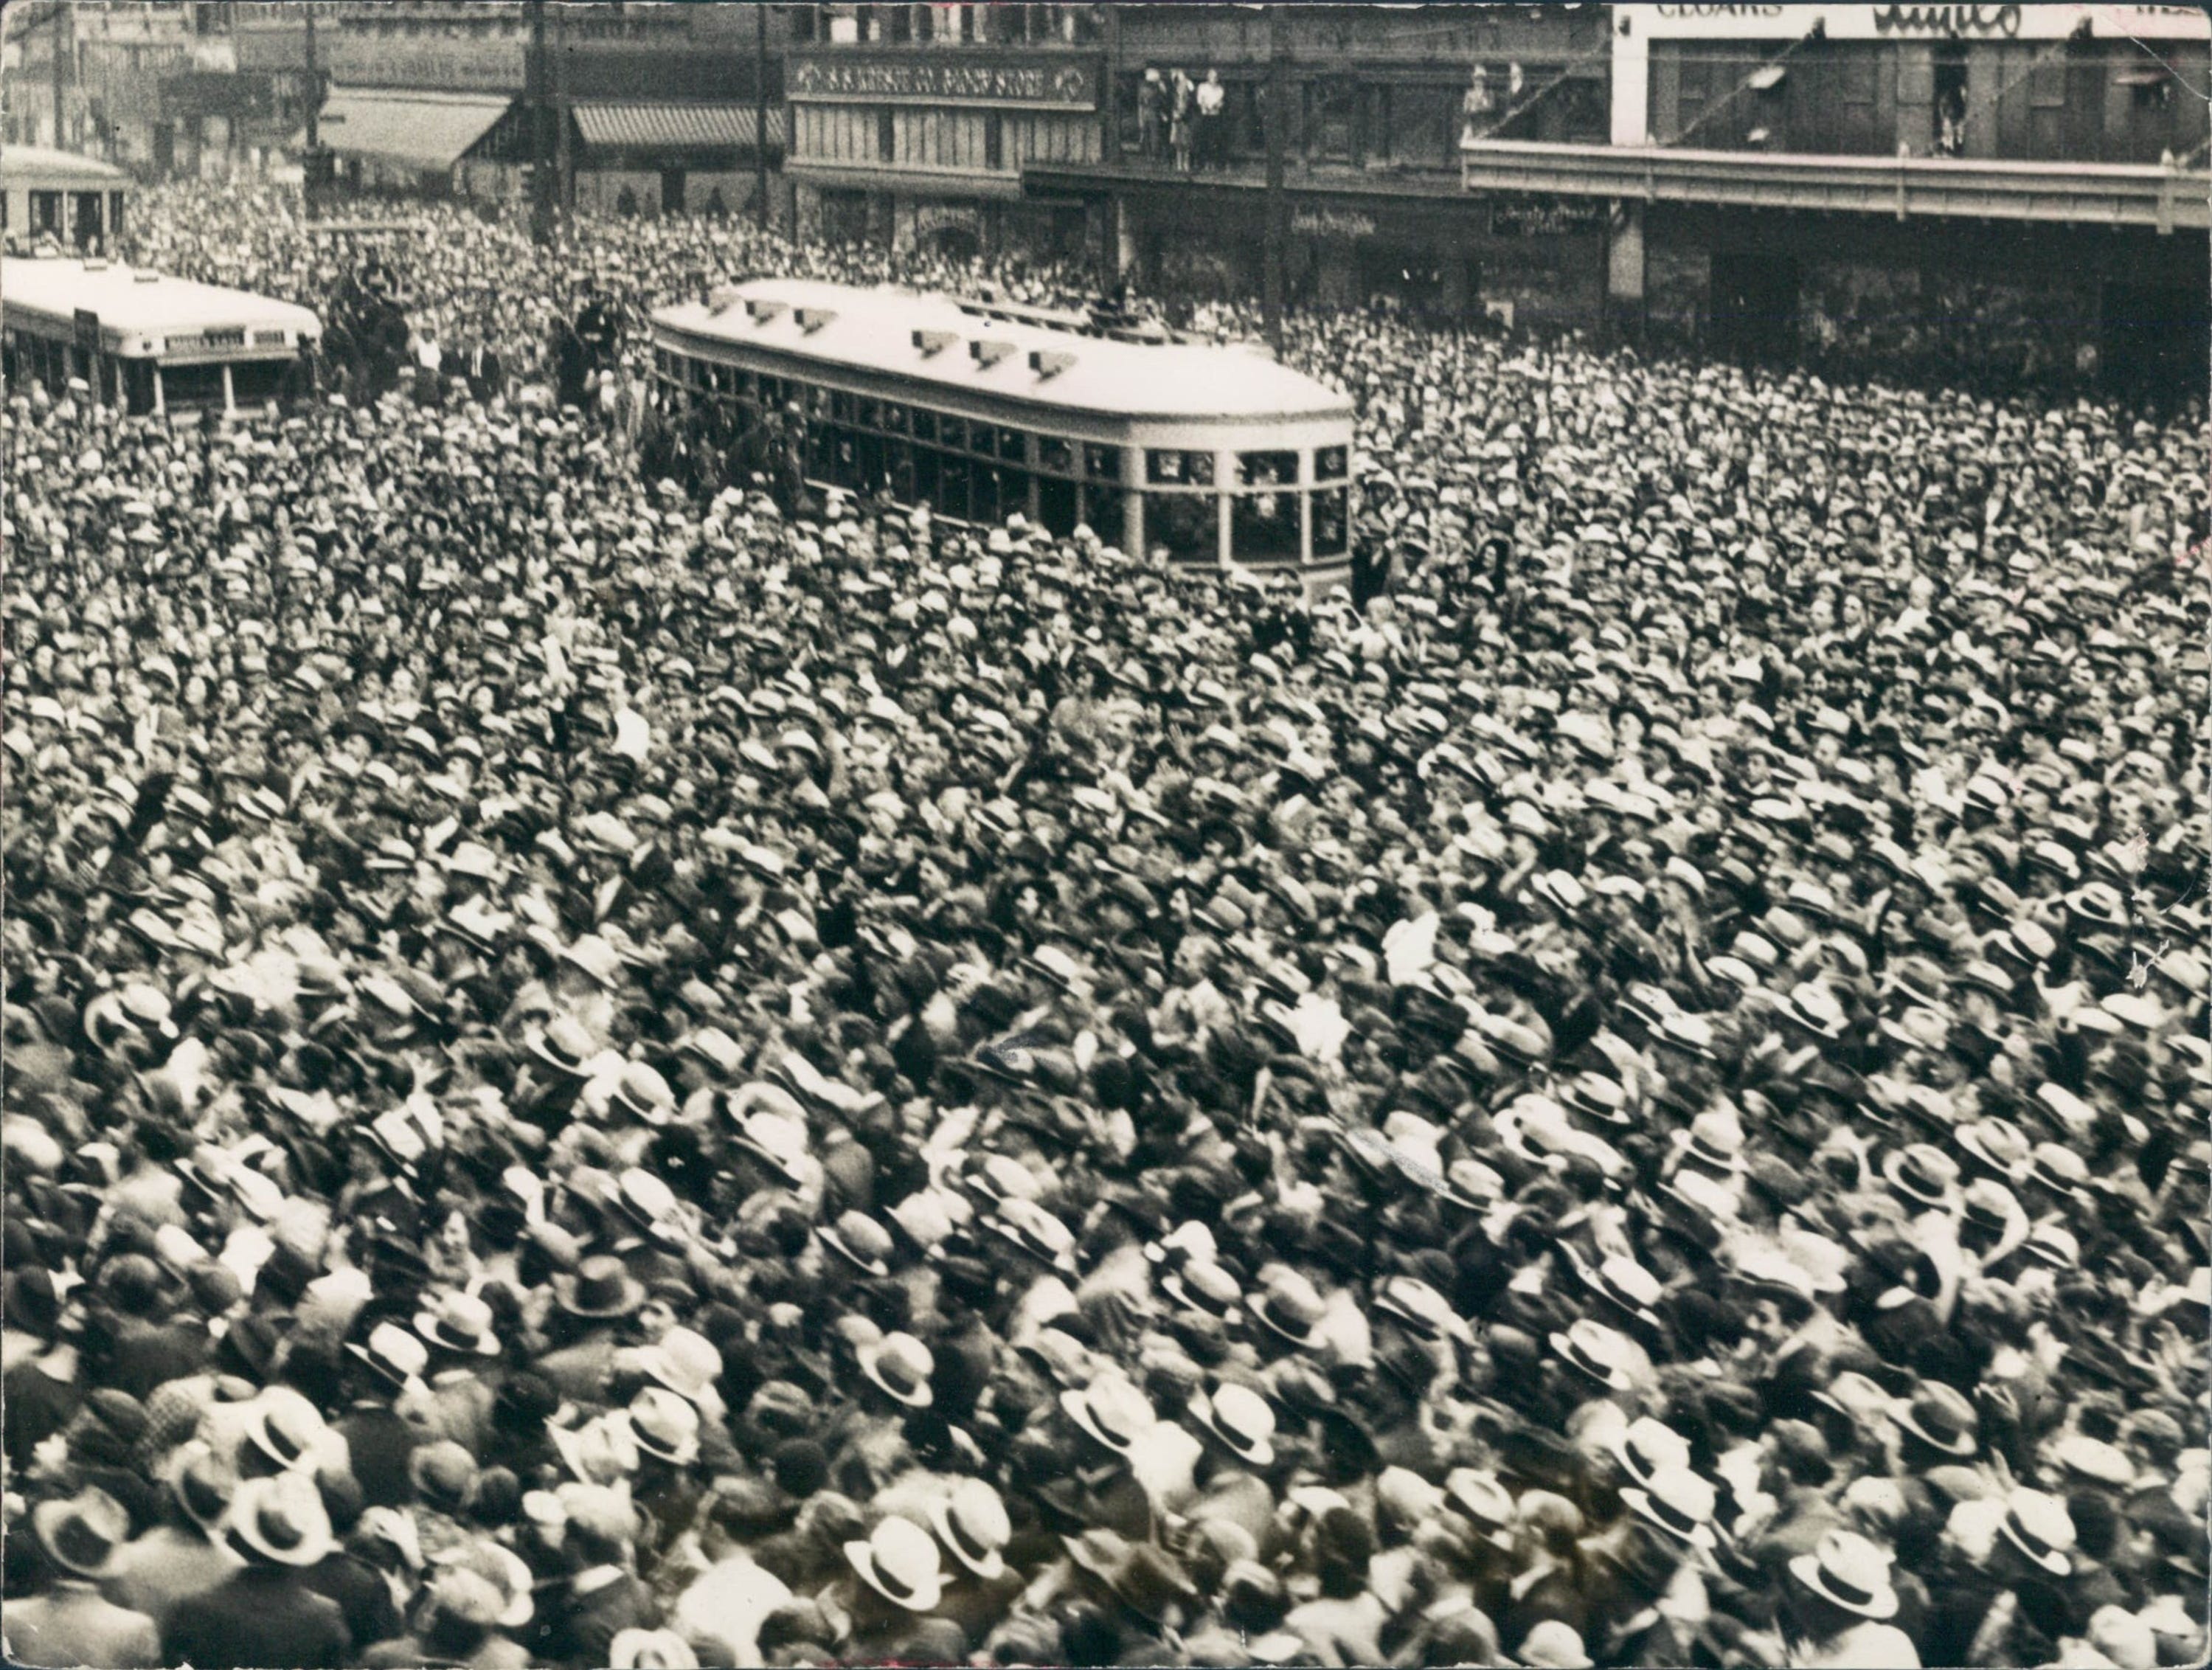 Detroiter's pack Woodward Ave in front of Hudson's to celebrate the 1934 Tigers American League pennant victory.